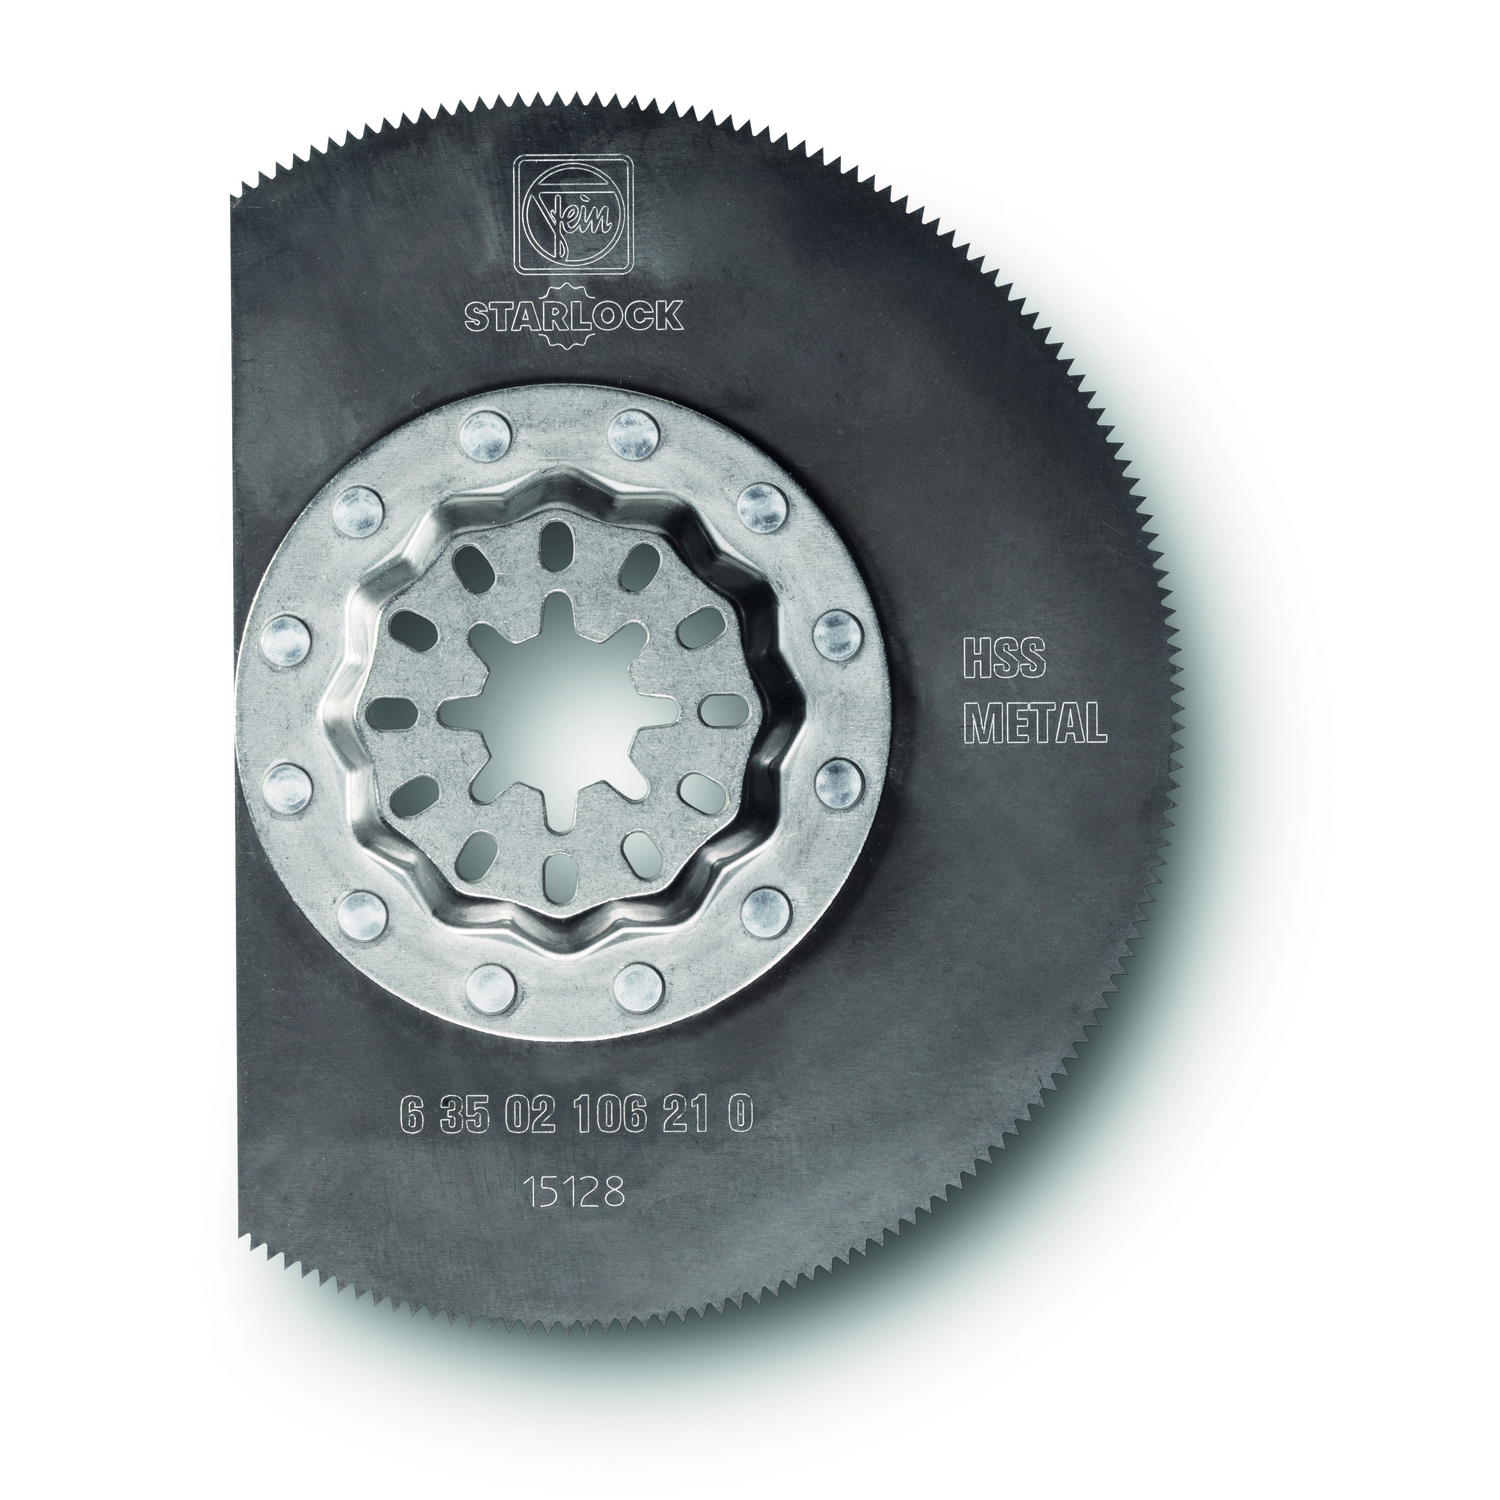 Fein Starlock  Multimaster  3-3/8 in.  x 3-3/8 in. L High Speed Steel  Segment Saw Blade  1 pk